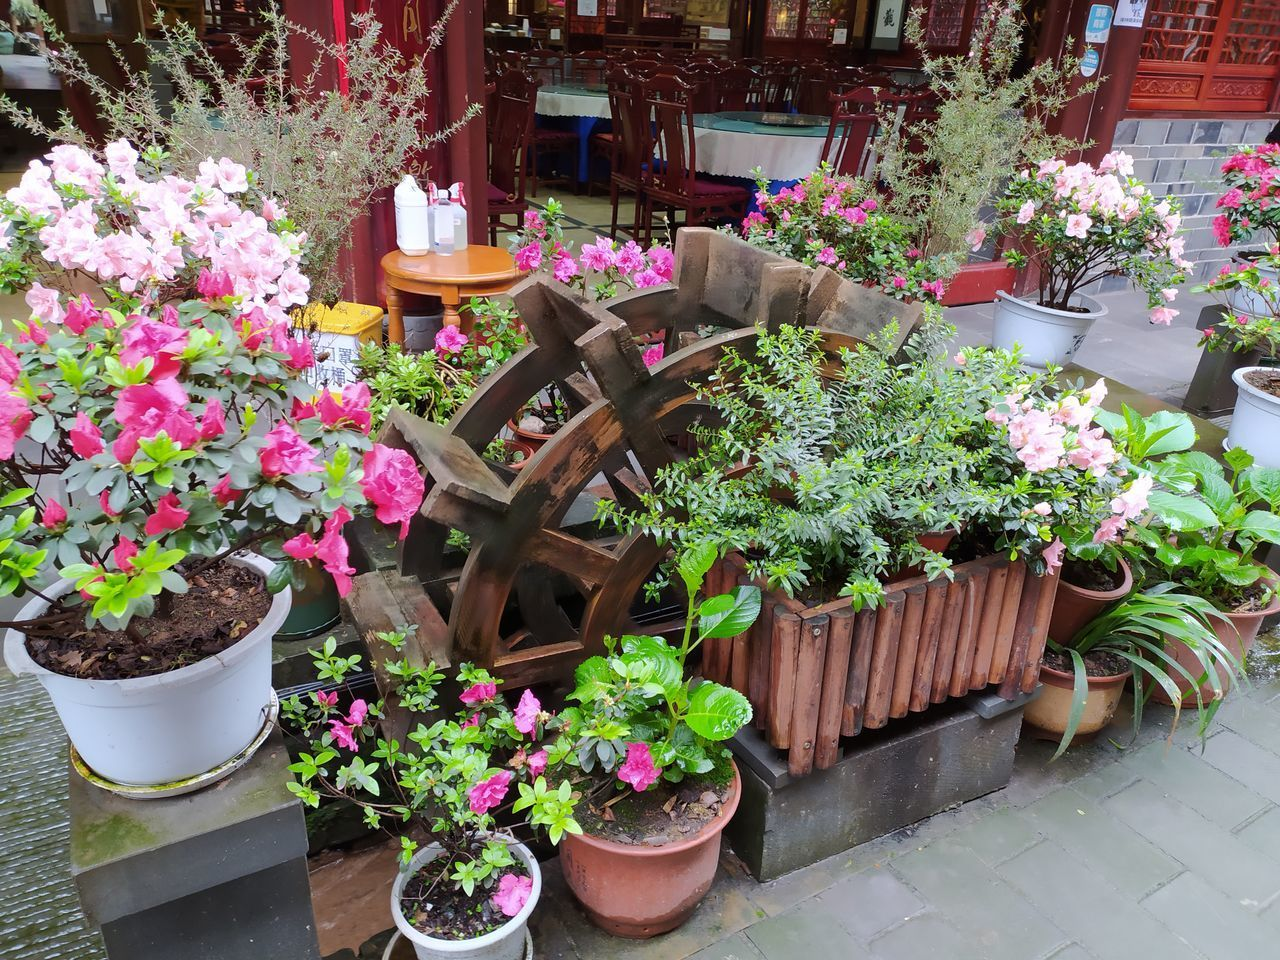 POTTED PLANTS AND FLOWERS ON TABLE AGAINST PLANT